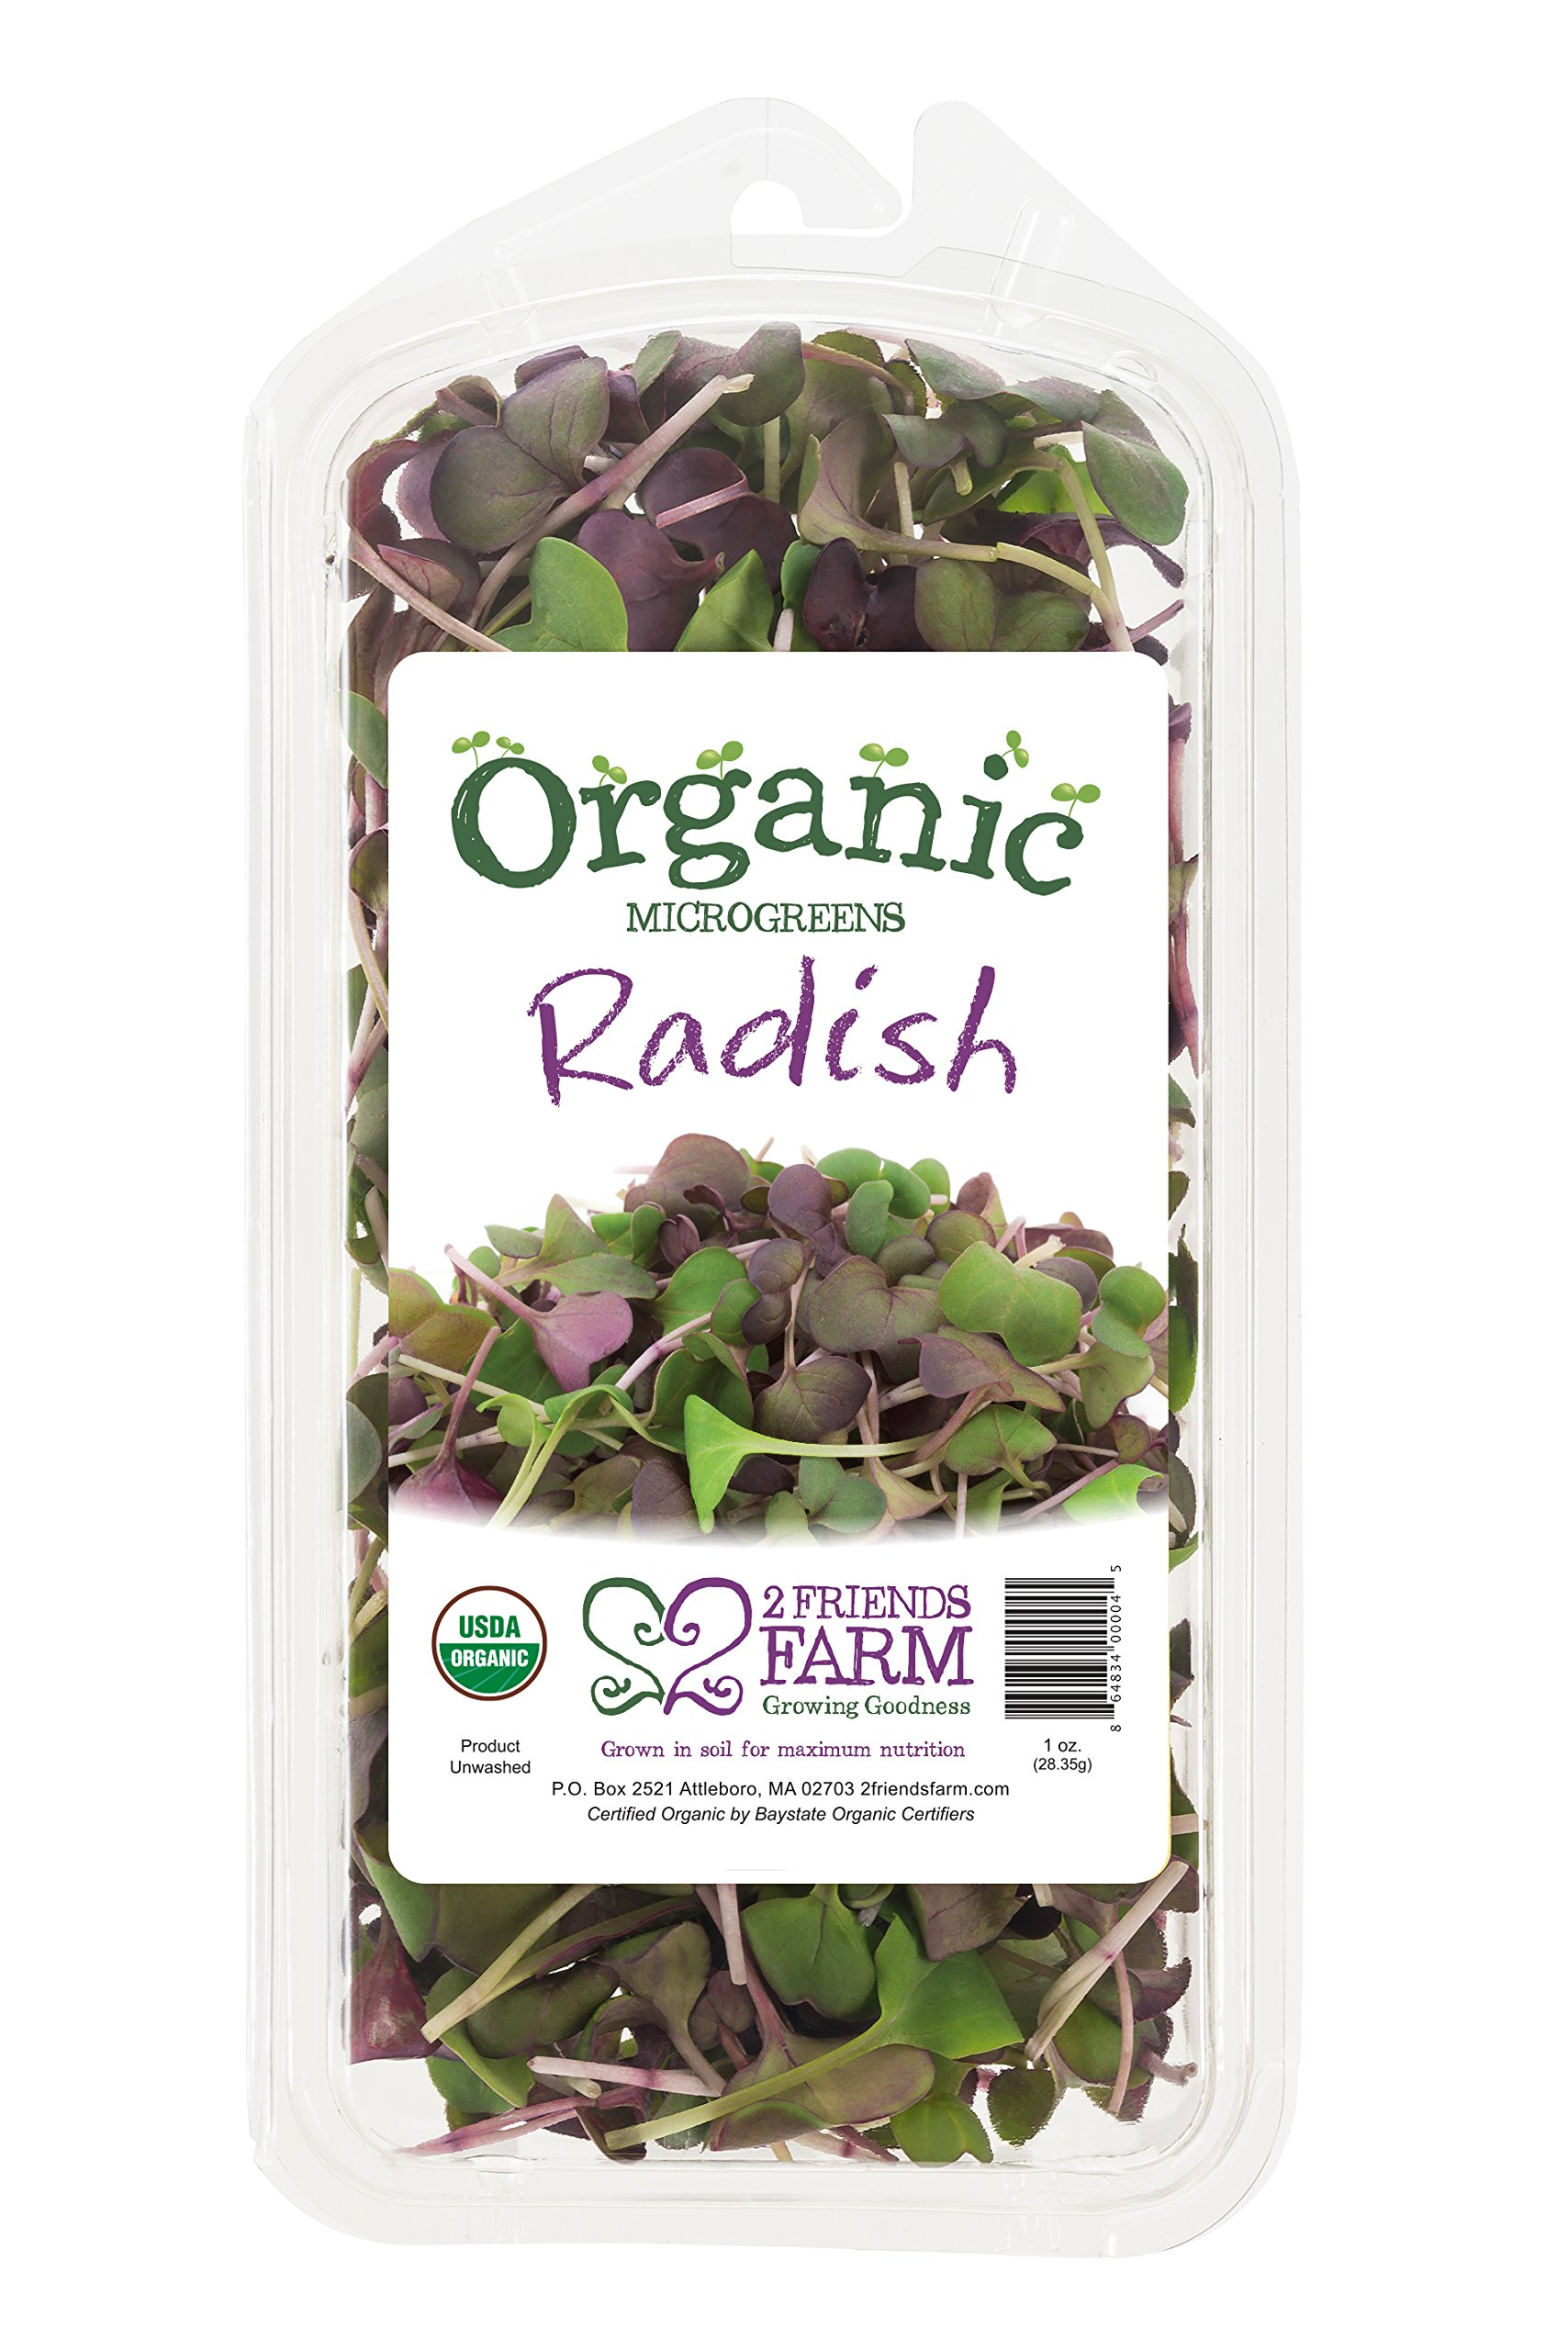 2 Friends Farm Local Northeast Organic Purple Radish Microgreens 1oz